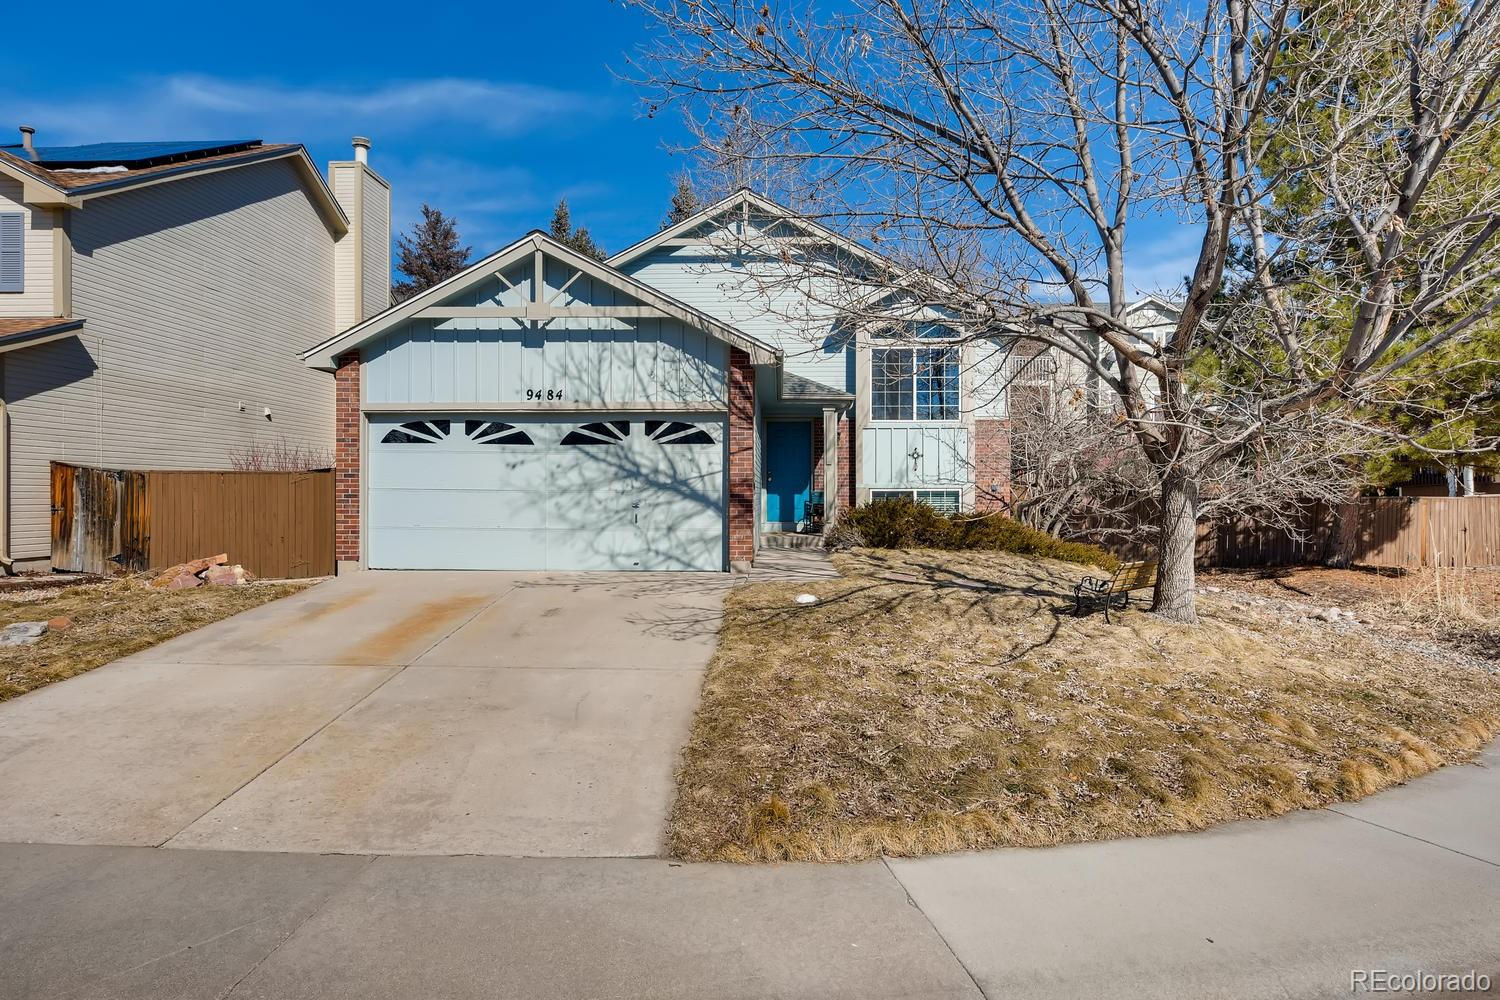 MLS# 1997025 - 1 - 9484 Palisade Court, Highlands Ranch, CO 80130